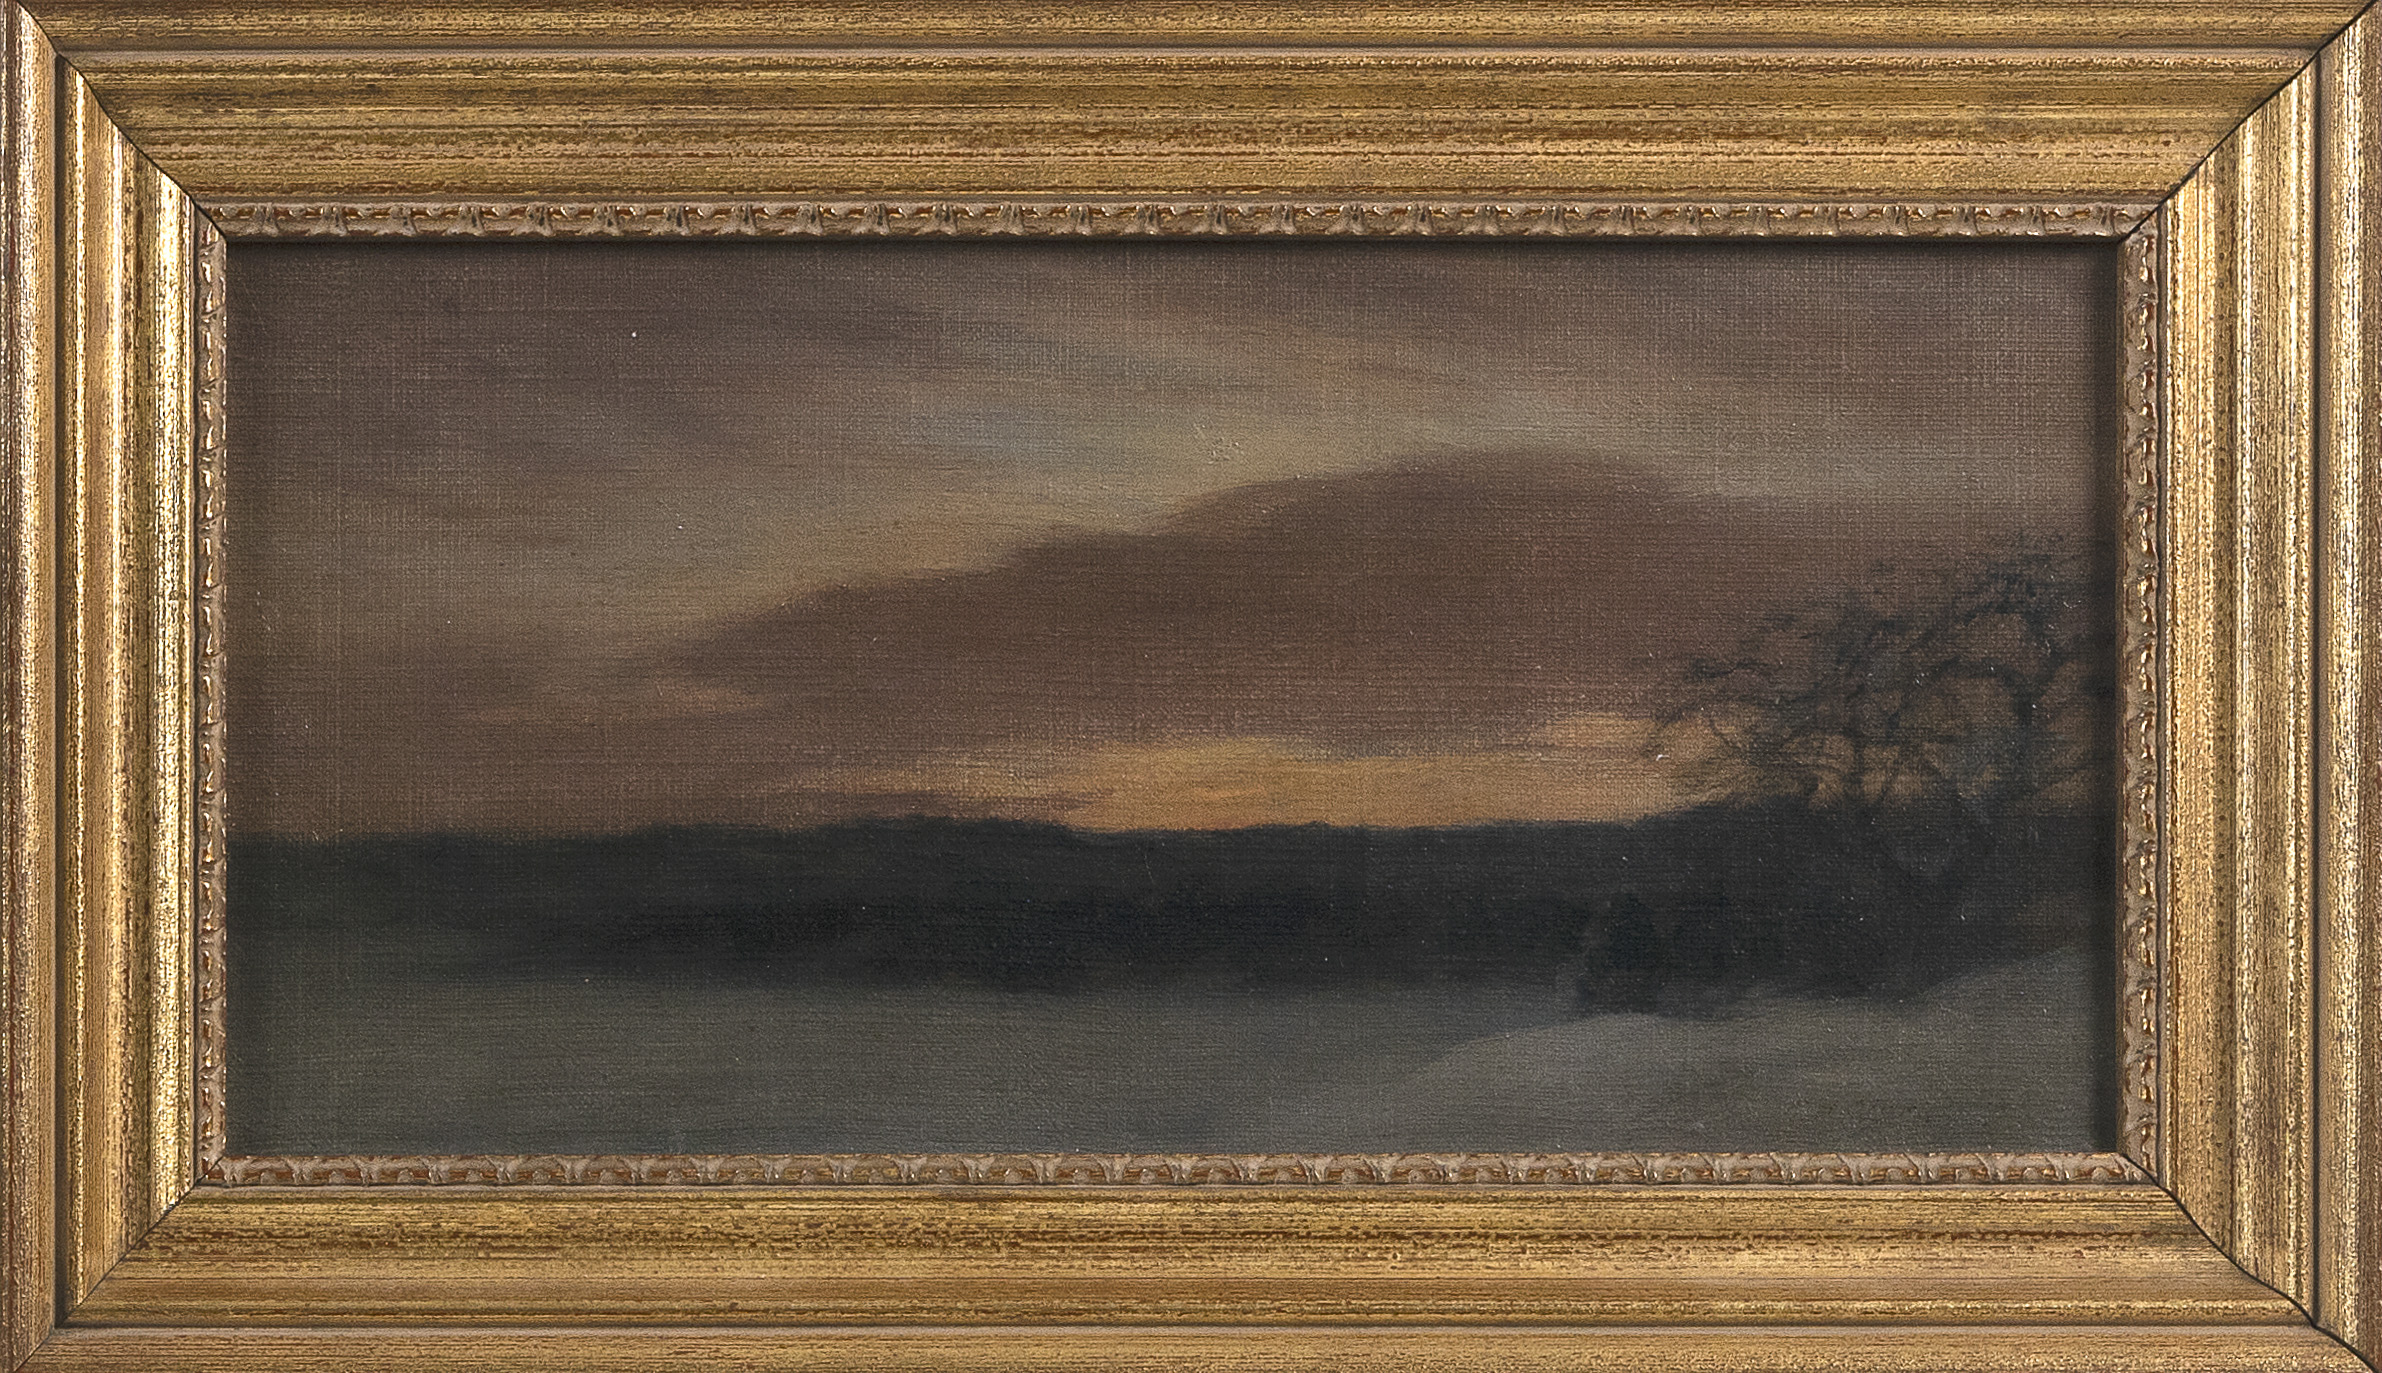 """FREDERICK HATFIELD CLARK (New Jersey/New York, 1862-1947), """"Winter Dawn at Vineyard Haven Looking Towards Lagoon Heights""""., Oil on canvas, 6"""" x 12"""". Framed 8.25"""" x 14.25""""."""